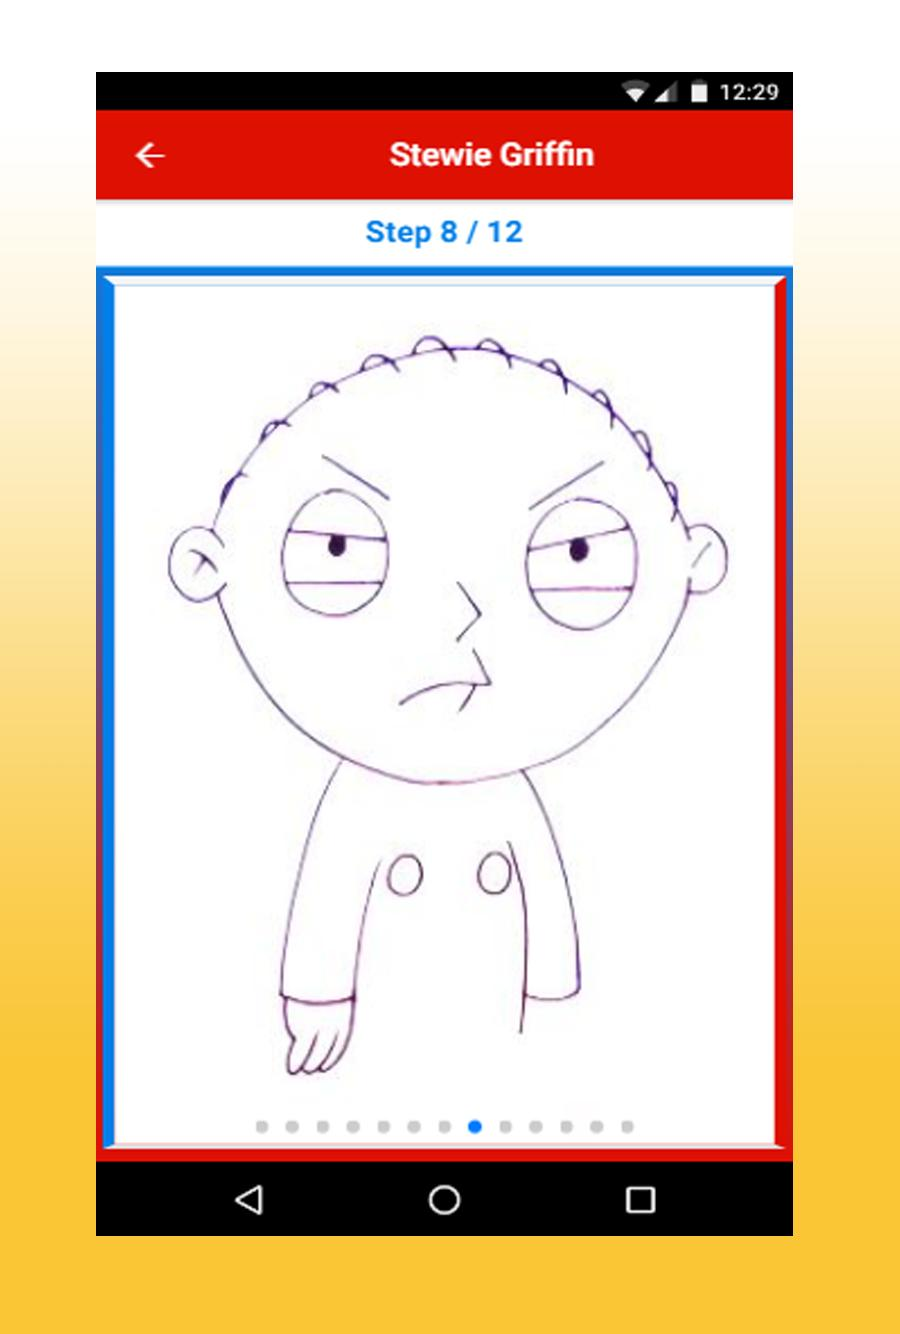 How To Draw Family Guy Characters Step By Step For Android Apk